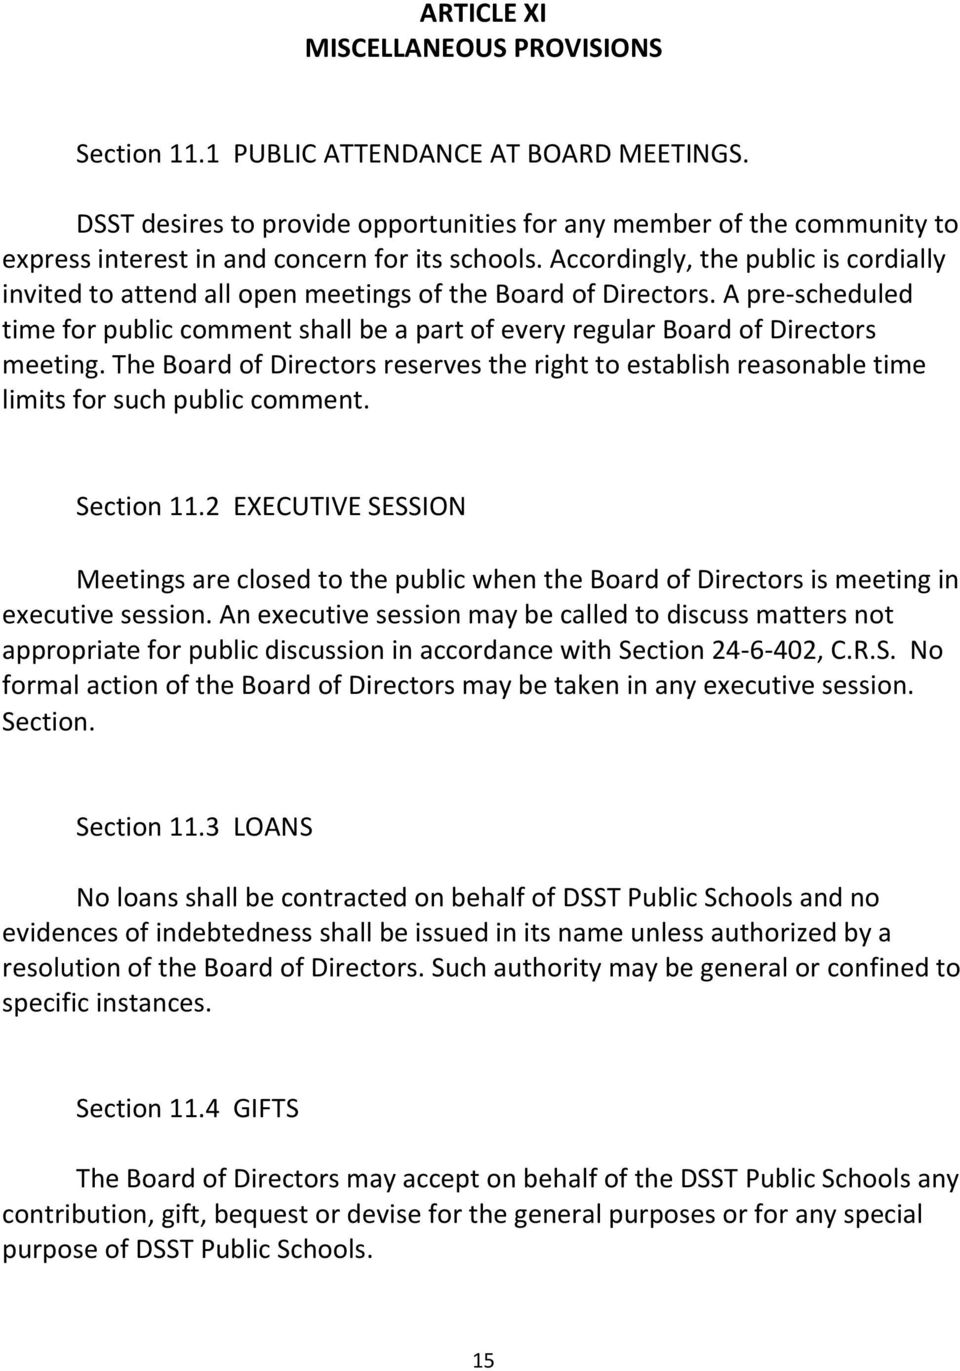 Accordingly, the public is cordially invited to attend all open meetings of the Board of Directors. A pre-scheduled time for public comment shall be a part of every regular Board of Directors meeting.